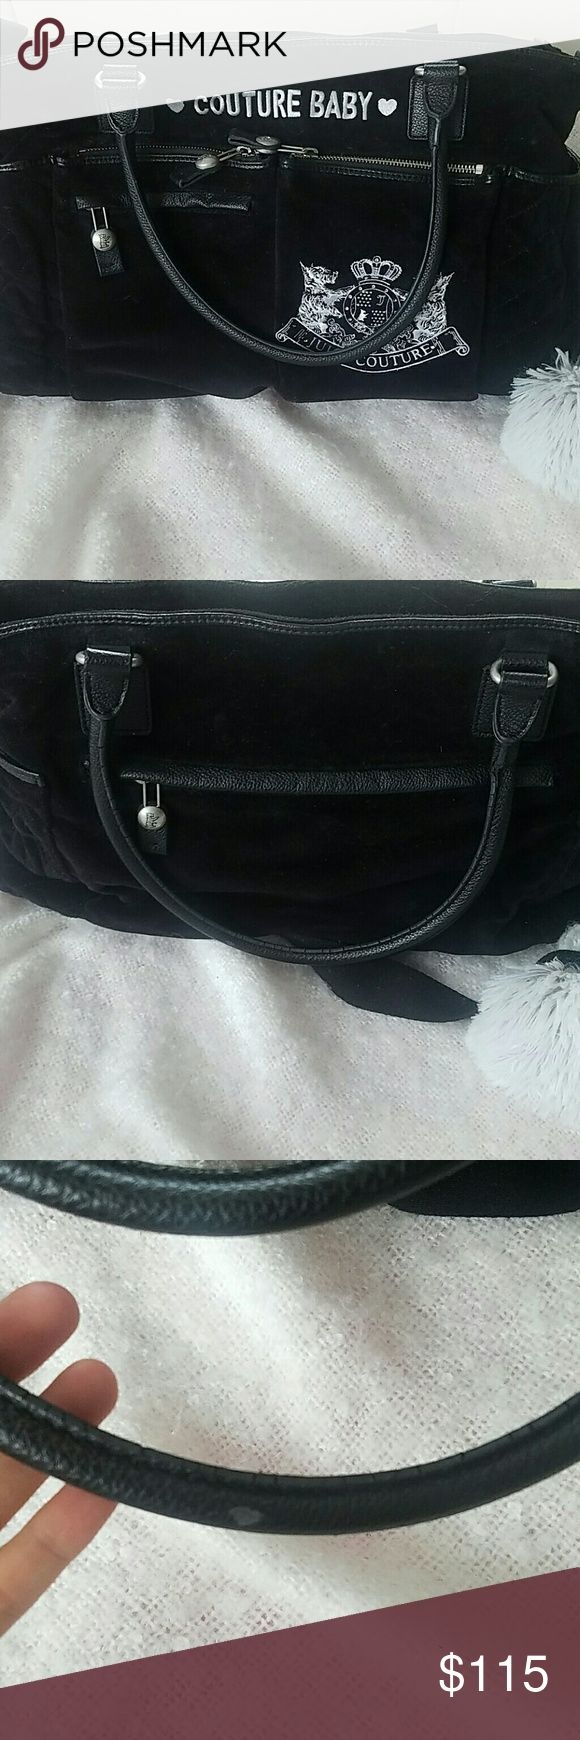 Juicy couture baby bag Large juicy couture baby bag Juicy Couture Bags